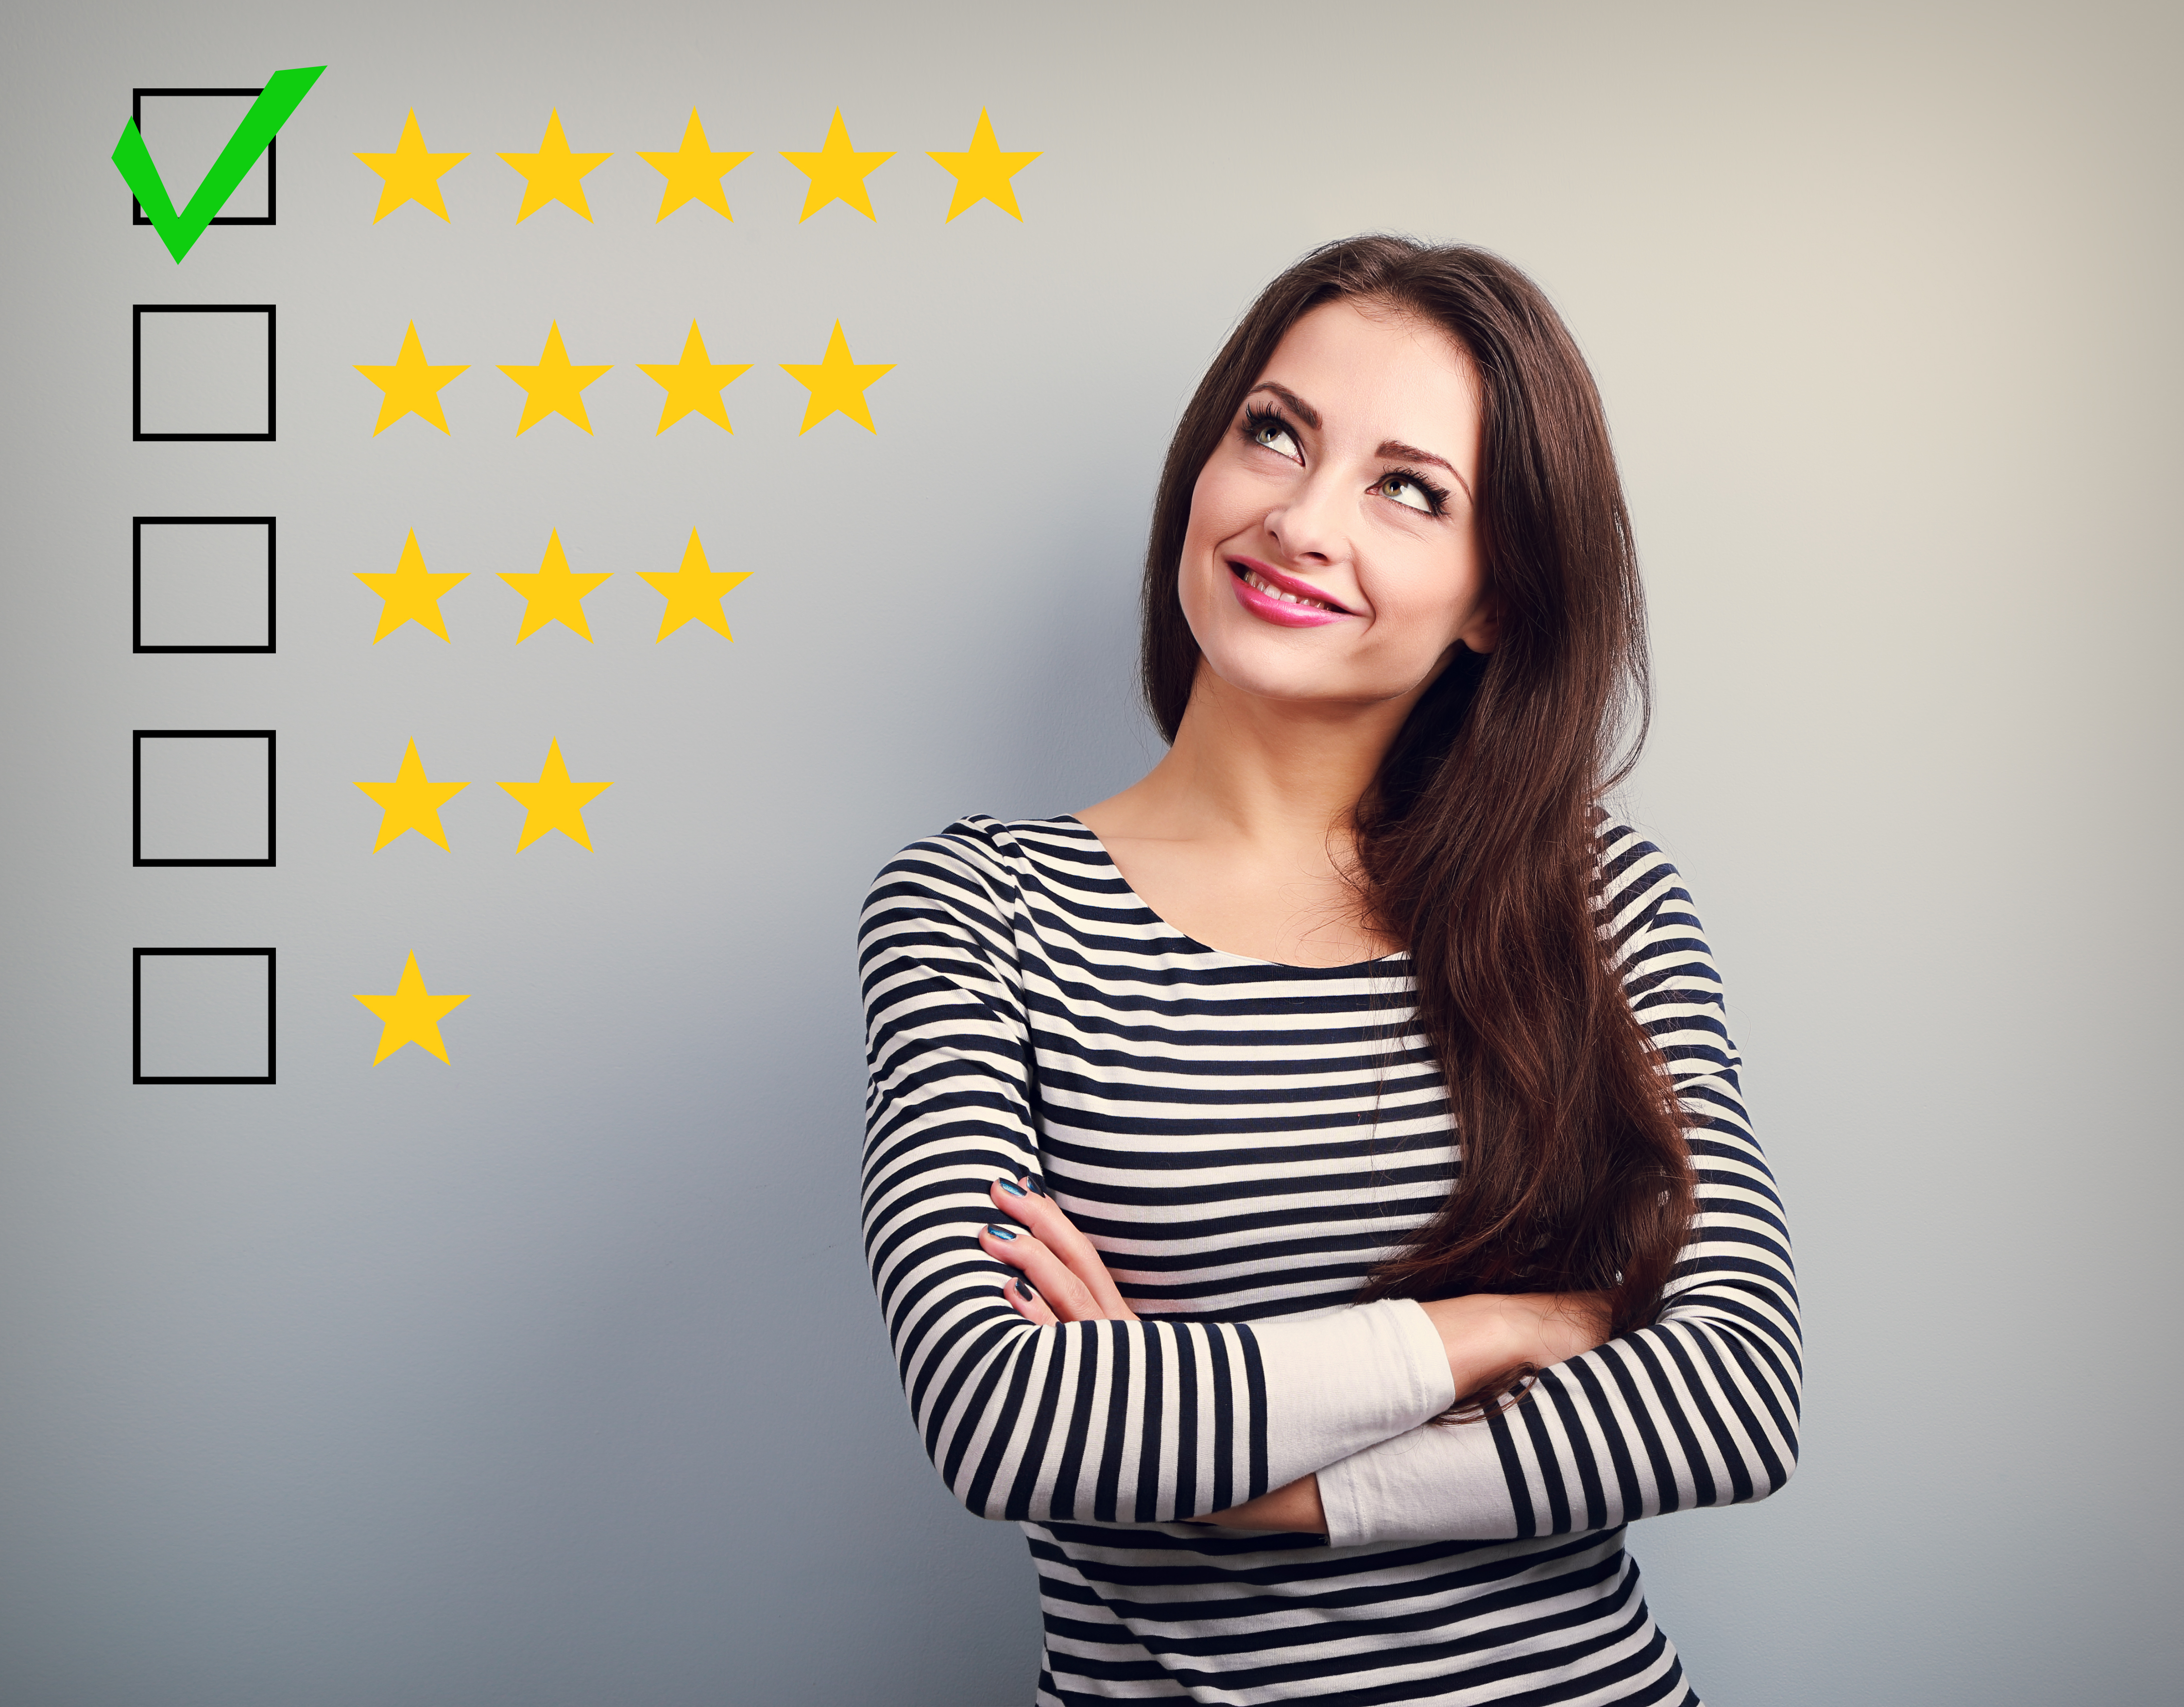 How to Exceed Your Customers' Expectations